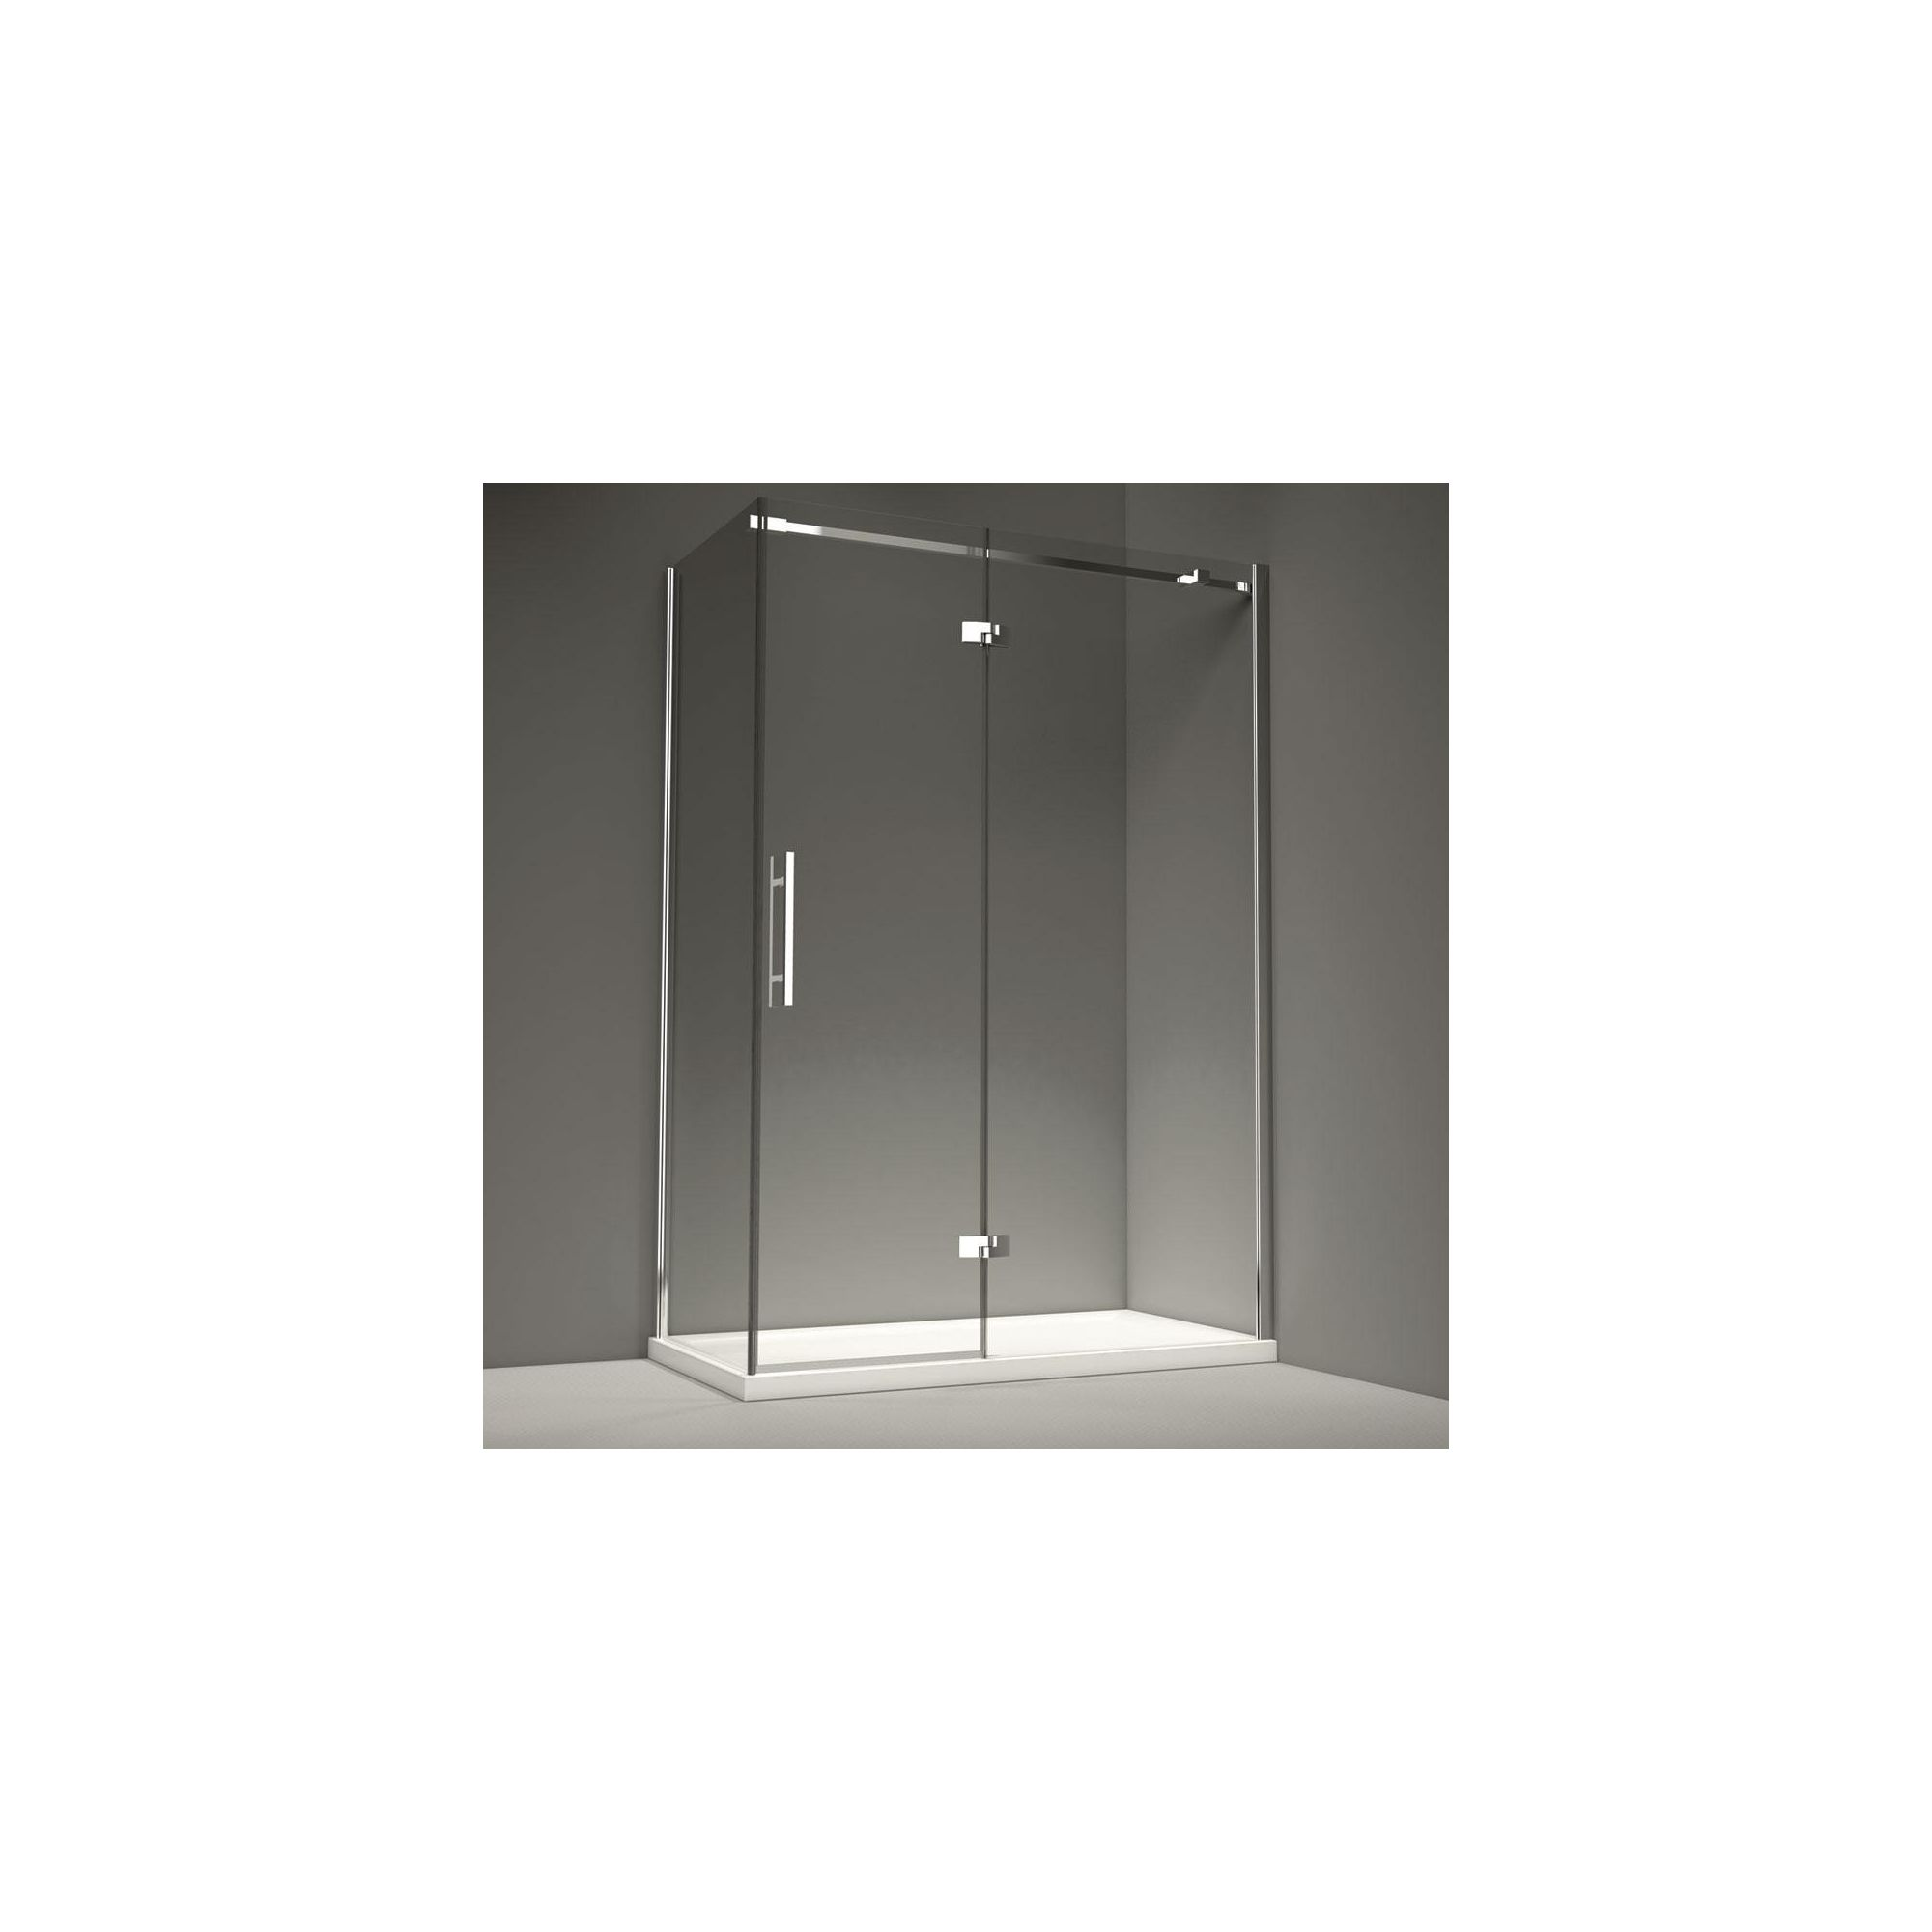 Merlyn Series 9 Inline Hinged Shower Door, 1600mm Wide, 8mm Glass, Right Handed at Tesco Direct